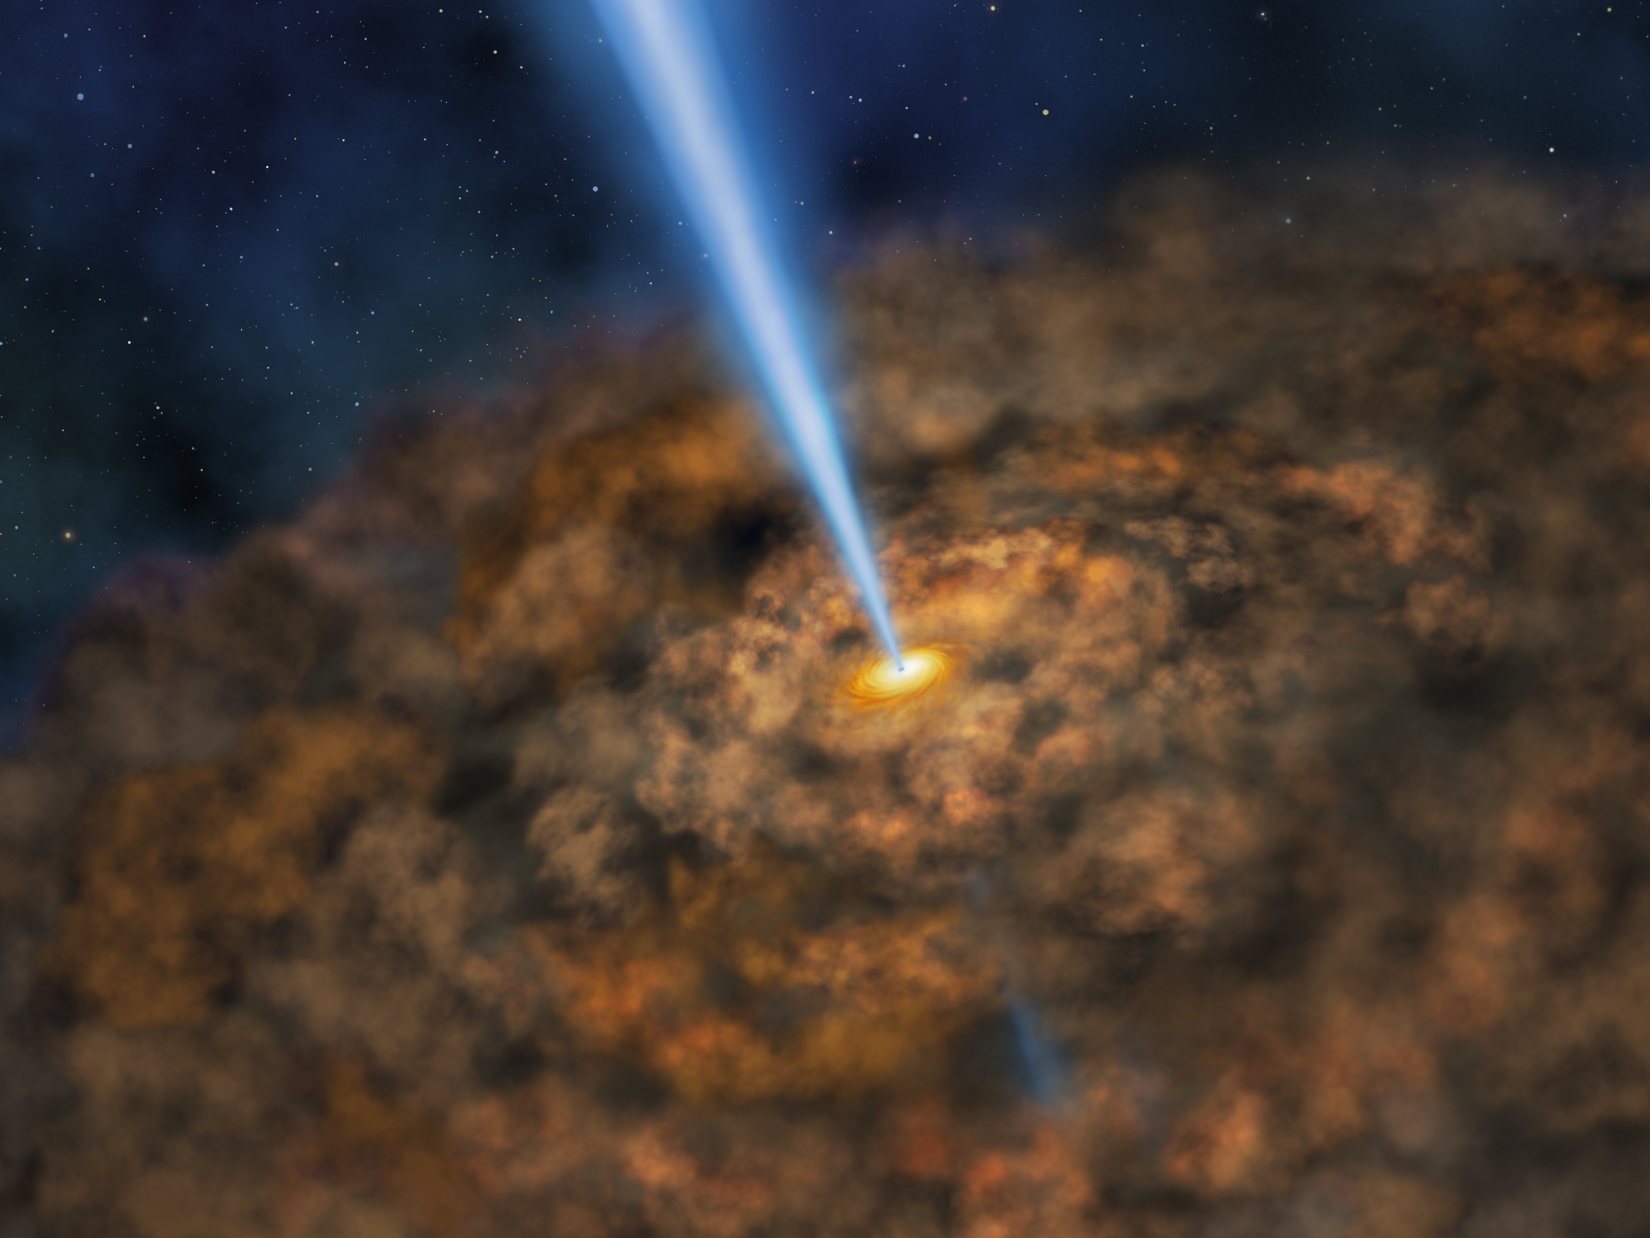 Illustration of thick ring of dust near the supermassive black hole of an active galactic nuclei